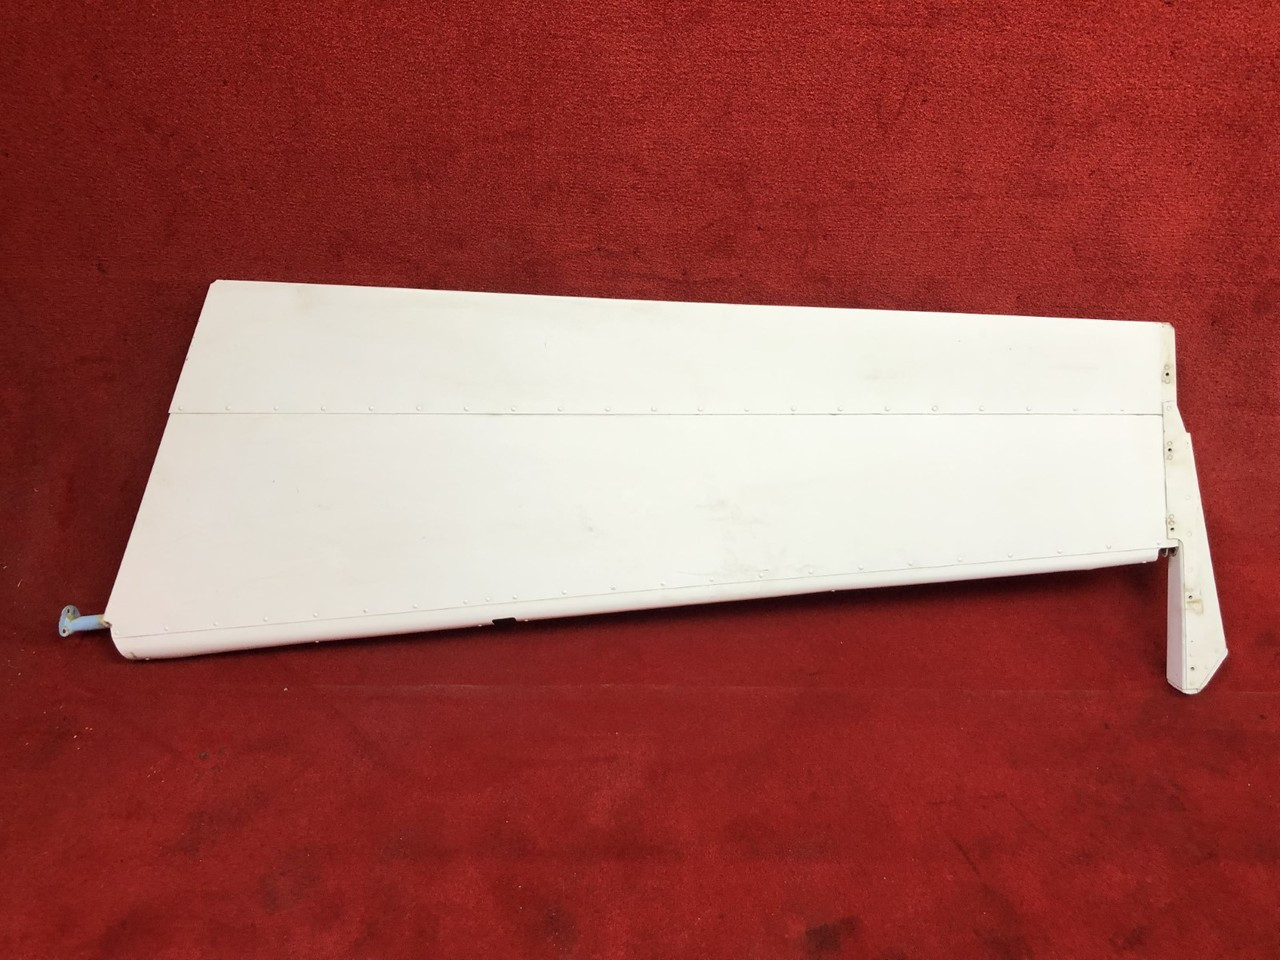 Cessna 150 LH Elevator PN 0432001-51 (EMAIL OR CALL TO BUY)